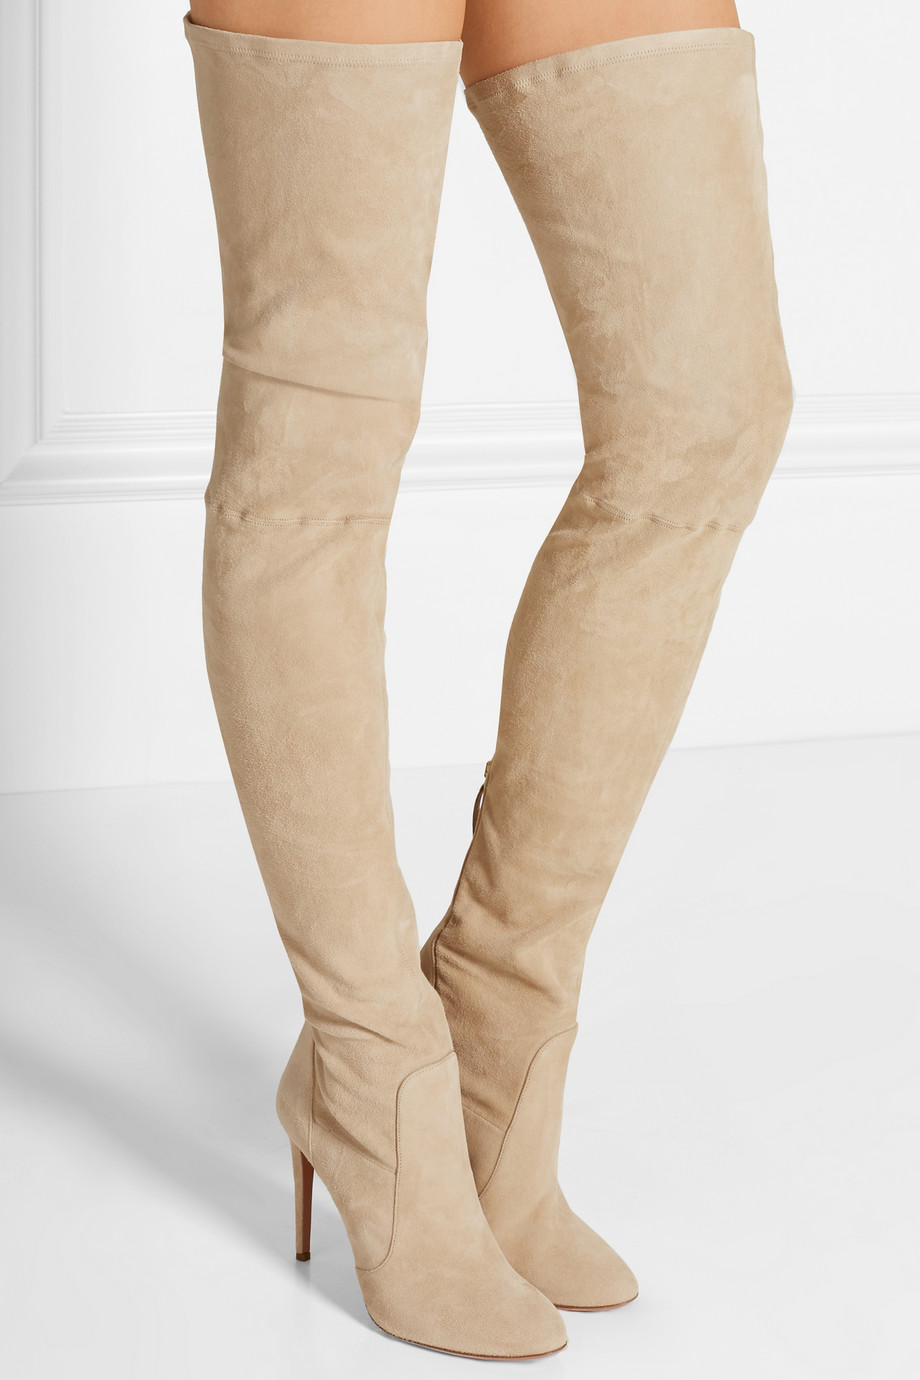 Winter newest beige suede over the knee high heel boots round toe sexy thigh high boots for woman fashion long boots